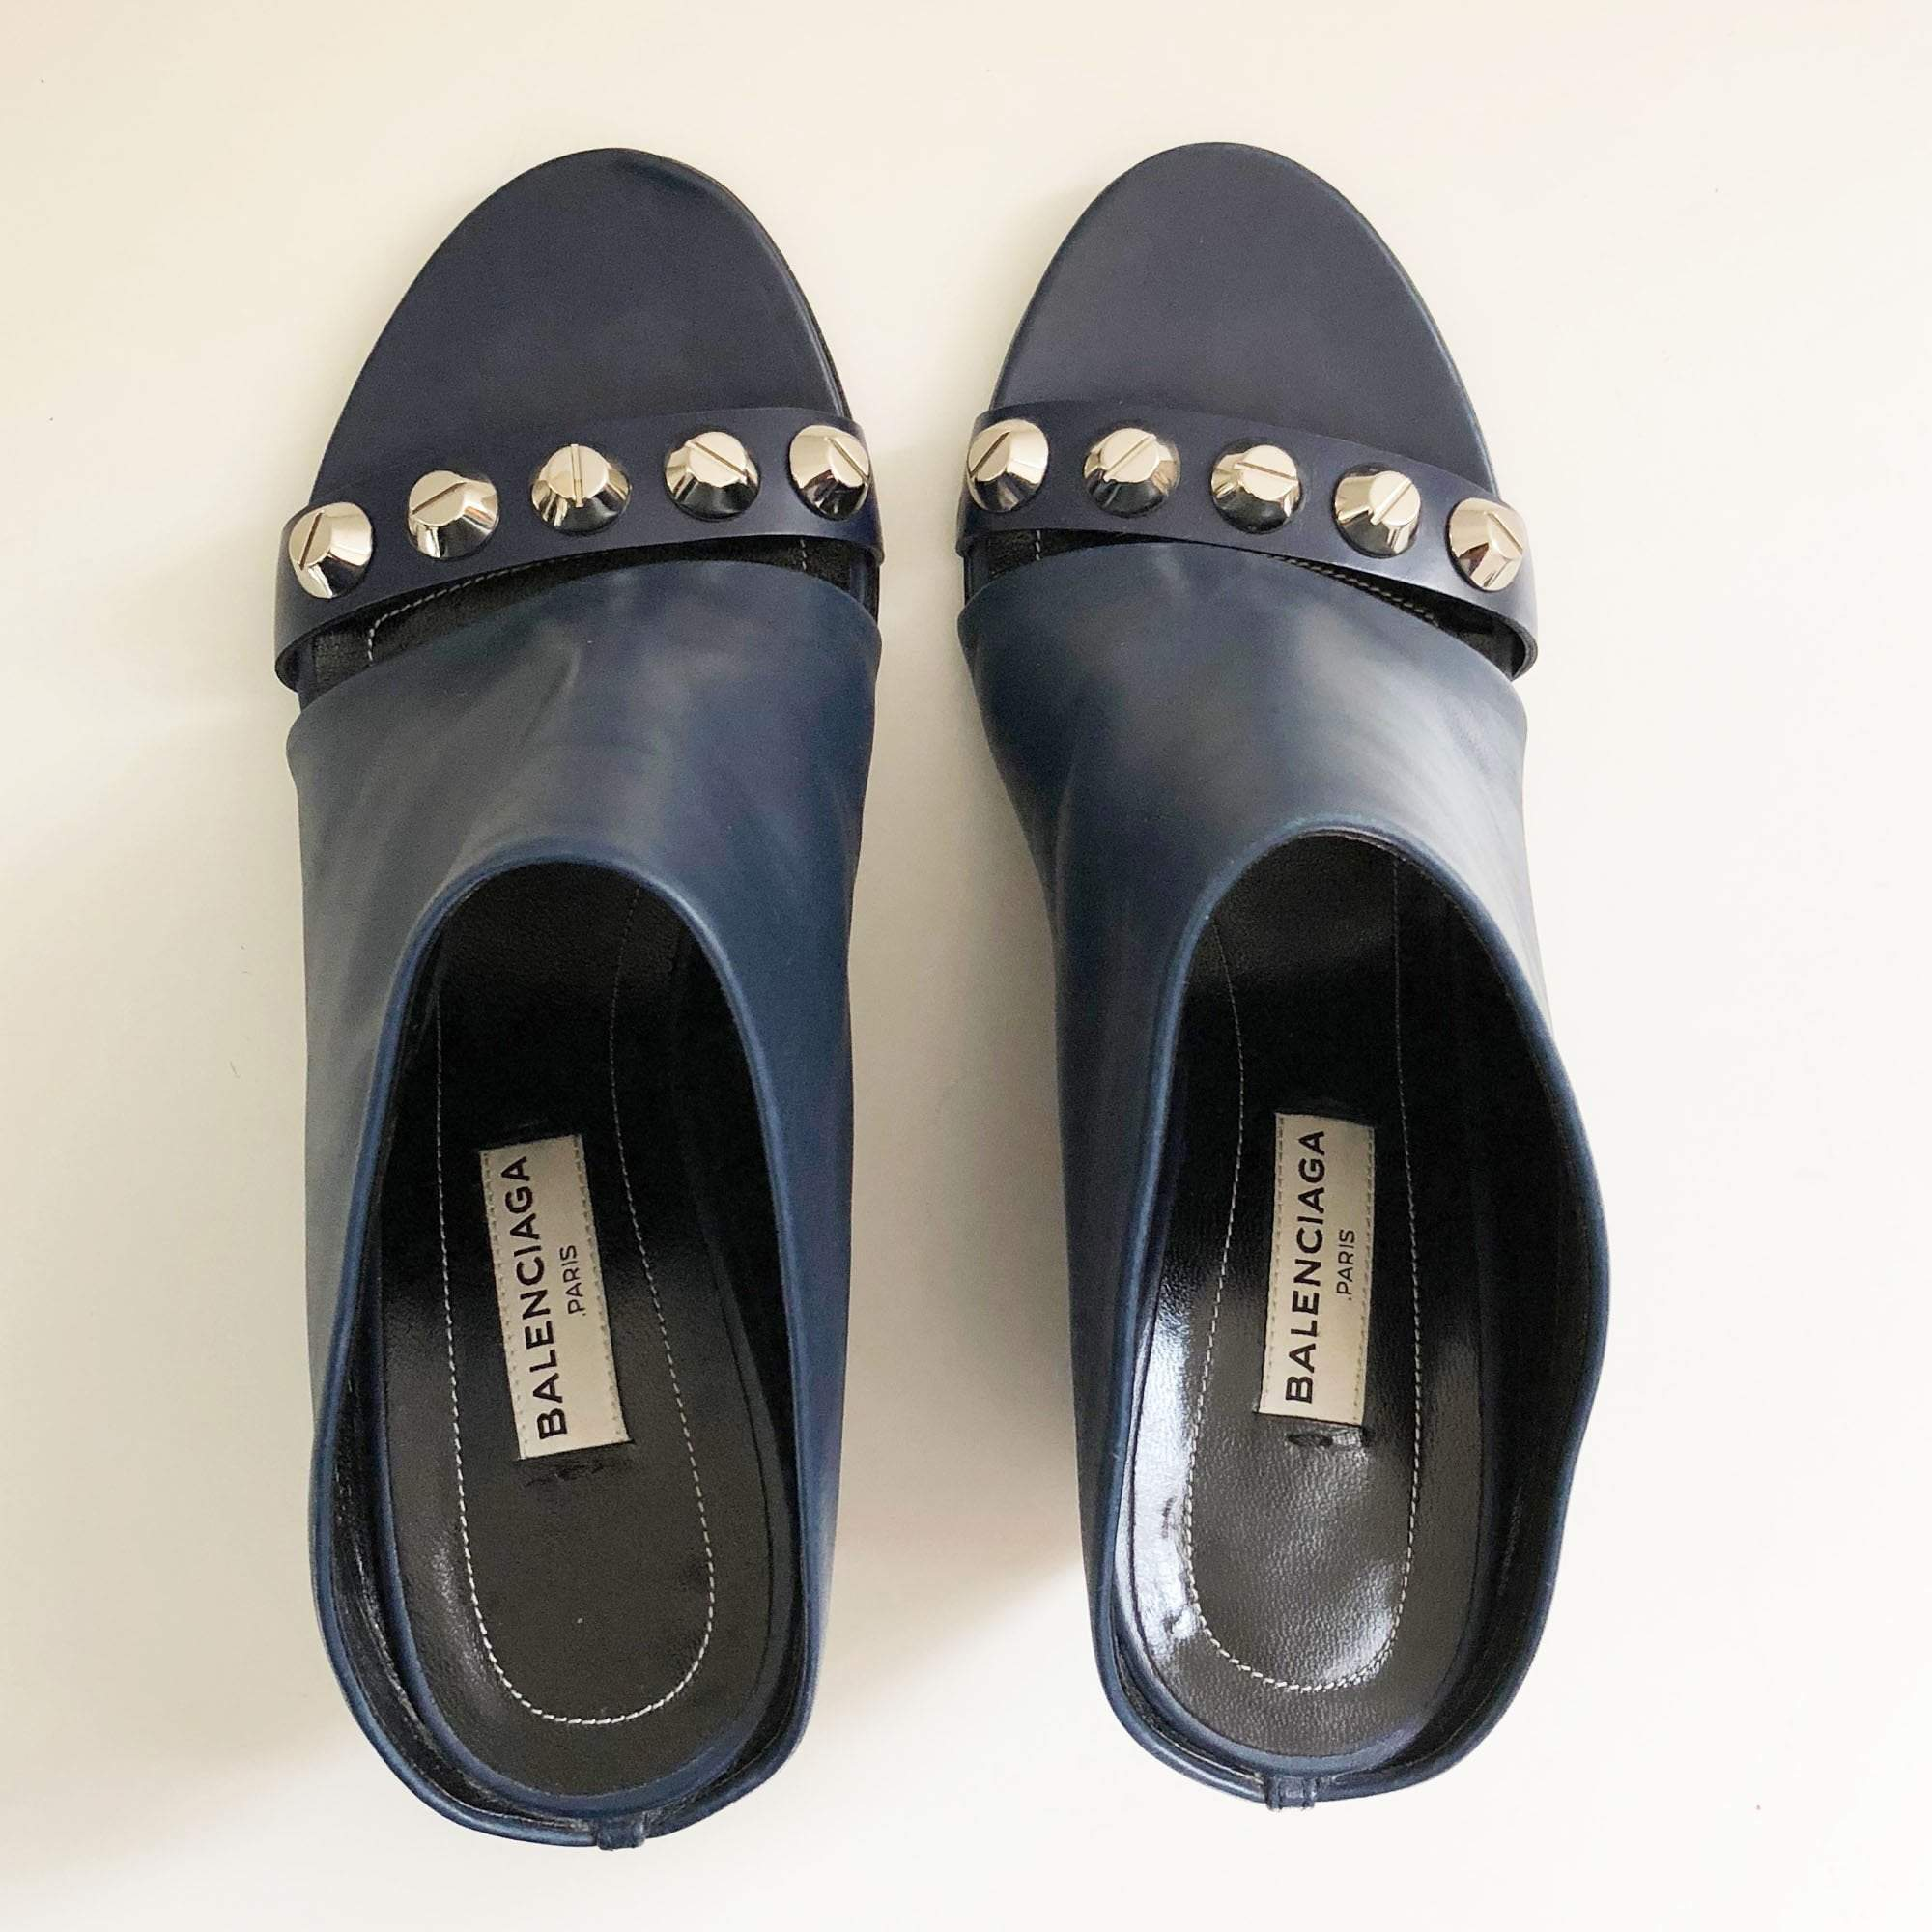 Balenciaga Studded Wedge Mules